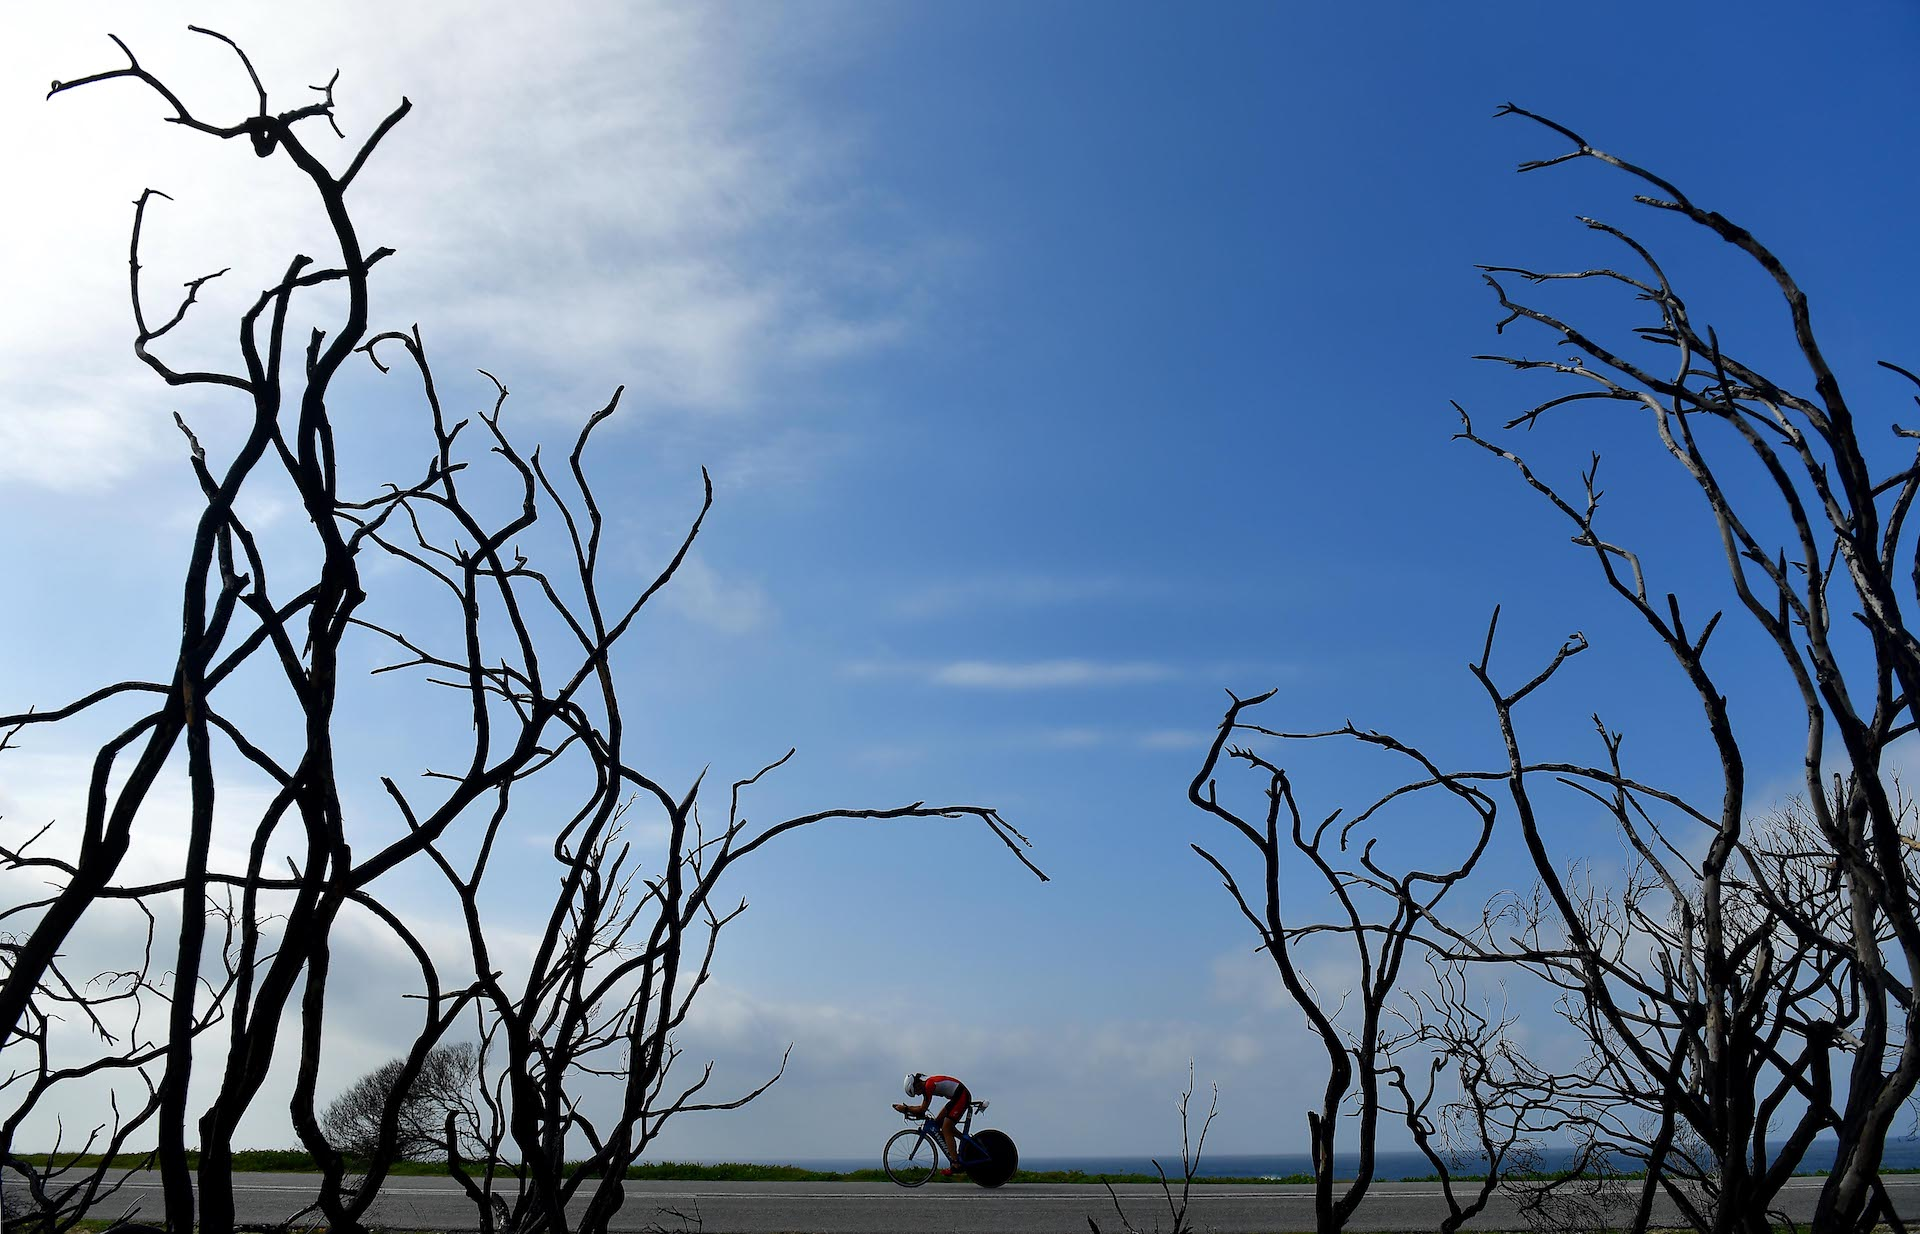 A triathlete bikes through petrifies trees during the Isuzu IRONMAN 70.3 World Championship Women in Port Elizabeth, South Africa (Photo by Donald Miralle/Getty Images for IRONMAN).